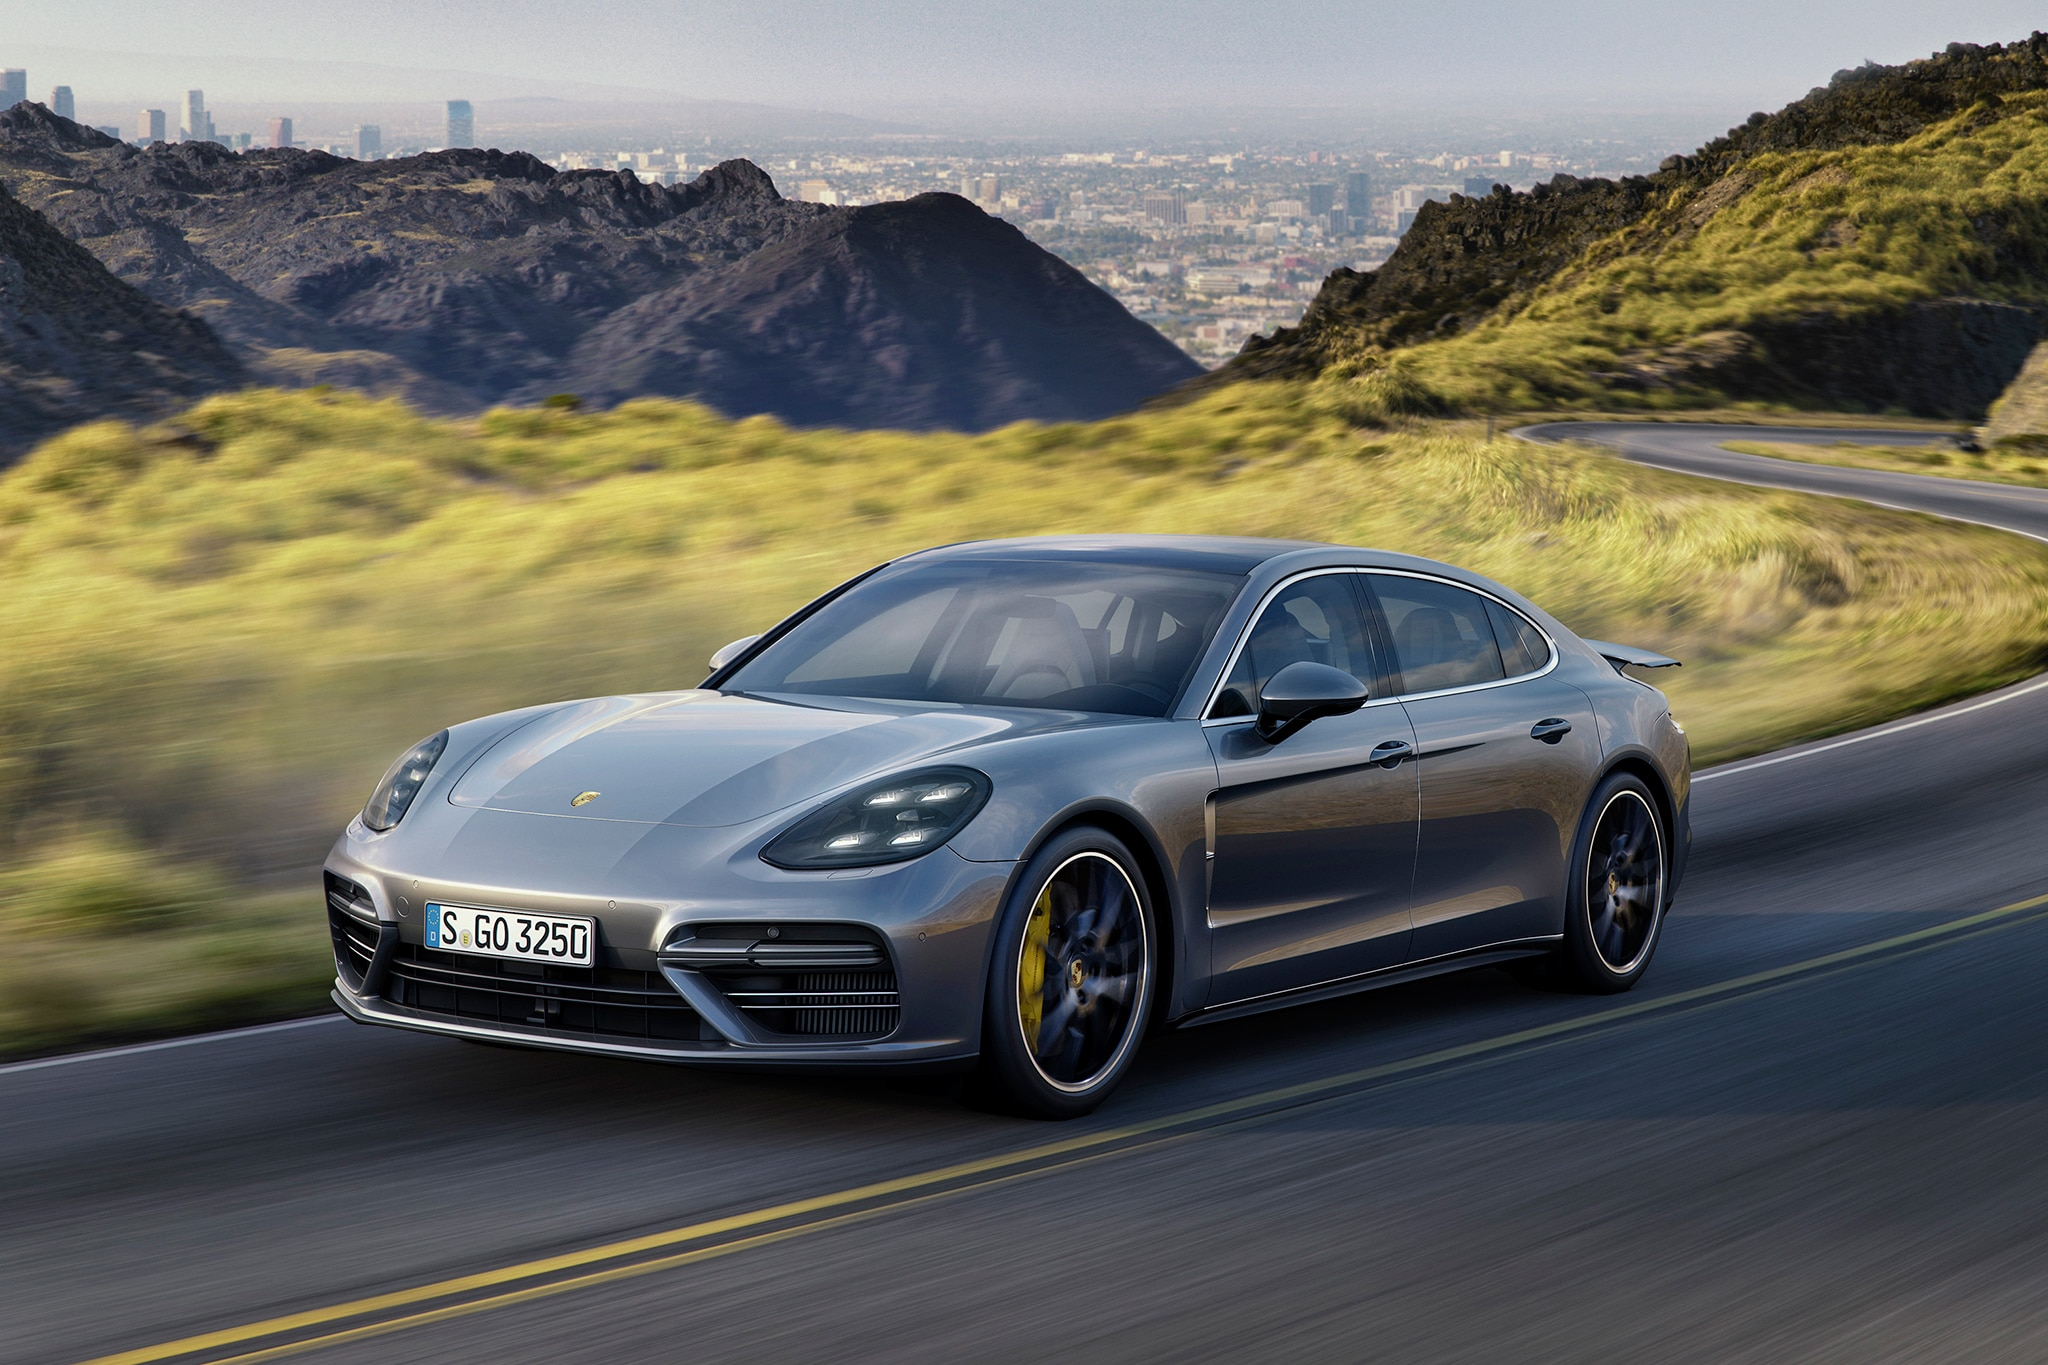 2017 Porsche Panamera Turbo Executive Front Three Quarter In Motion 01